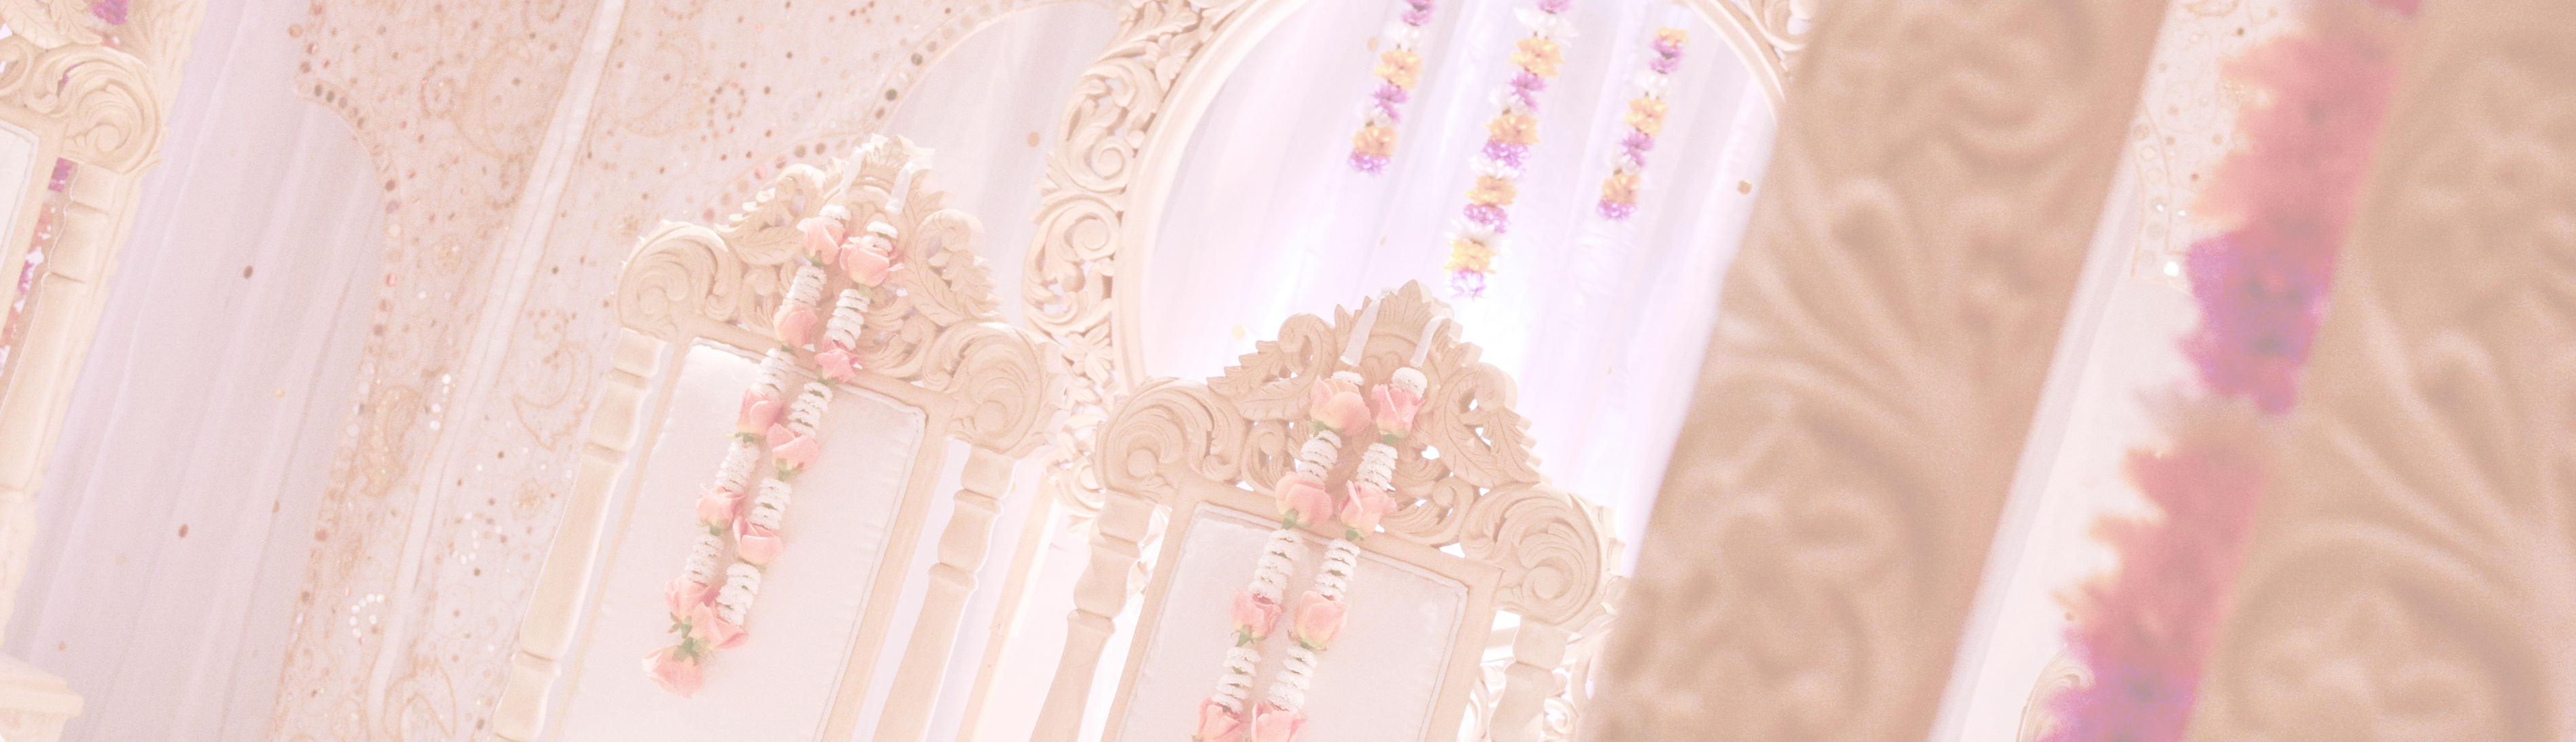 Elegant-wedding-garlands